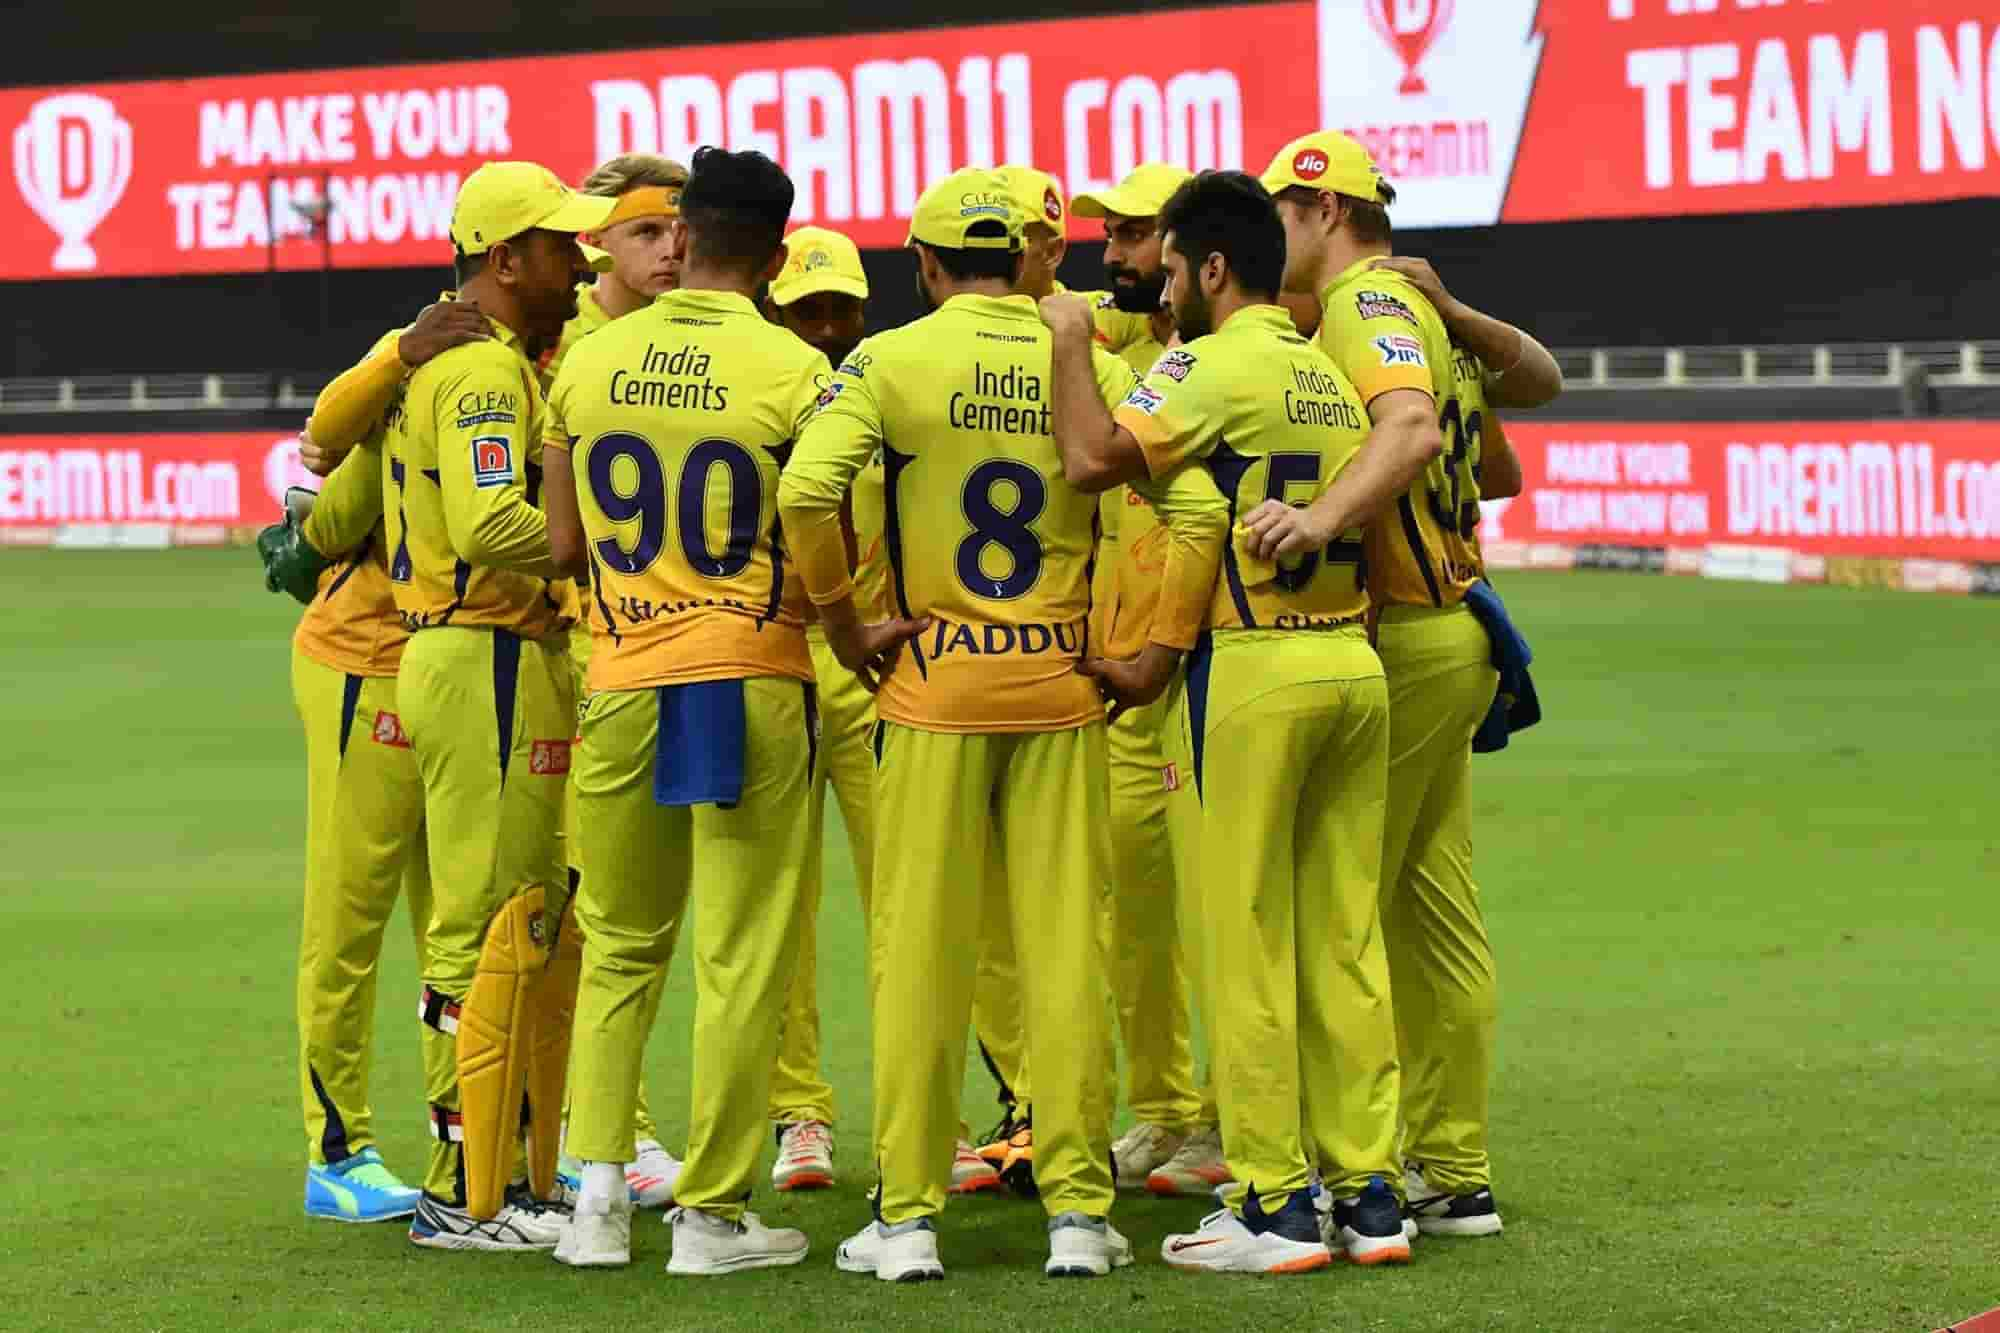 IPL 2021 CSK ropes in Tushar Deshpande as reserve bowler for 2nd phase in UAE